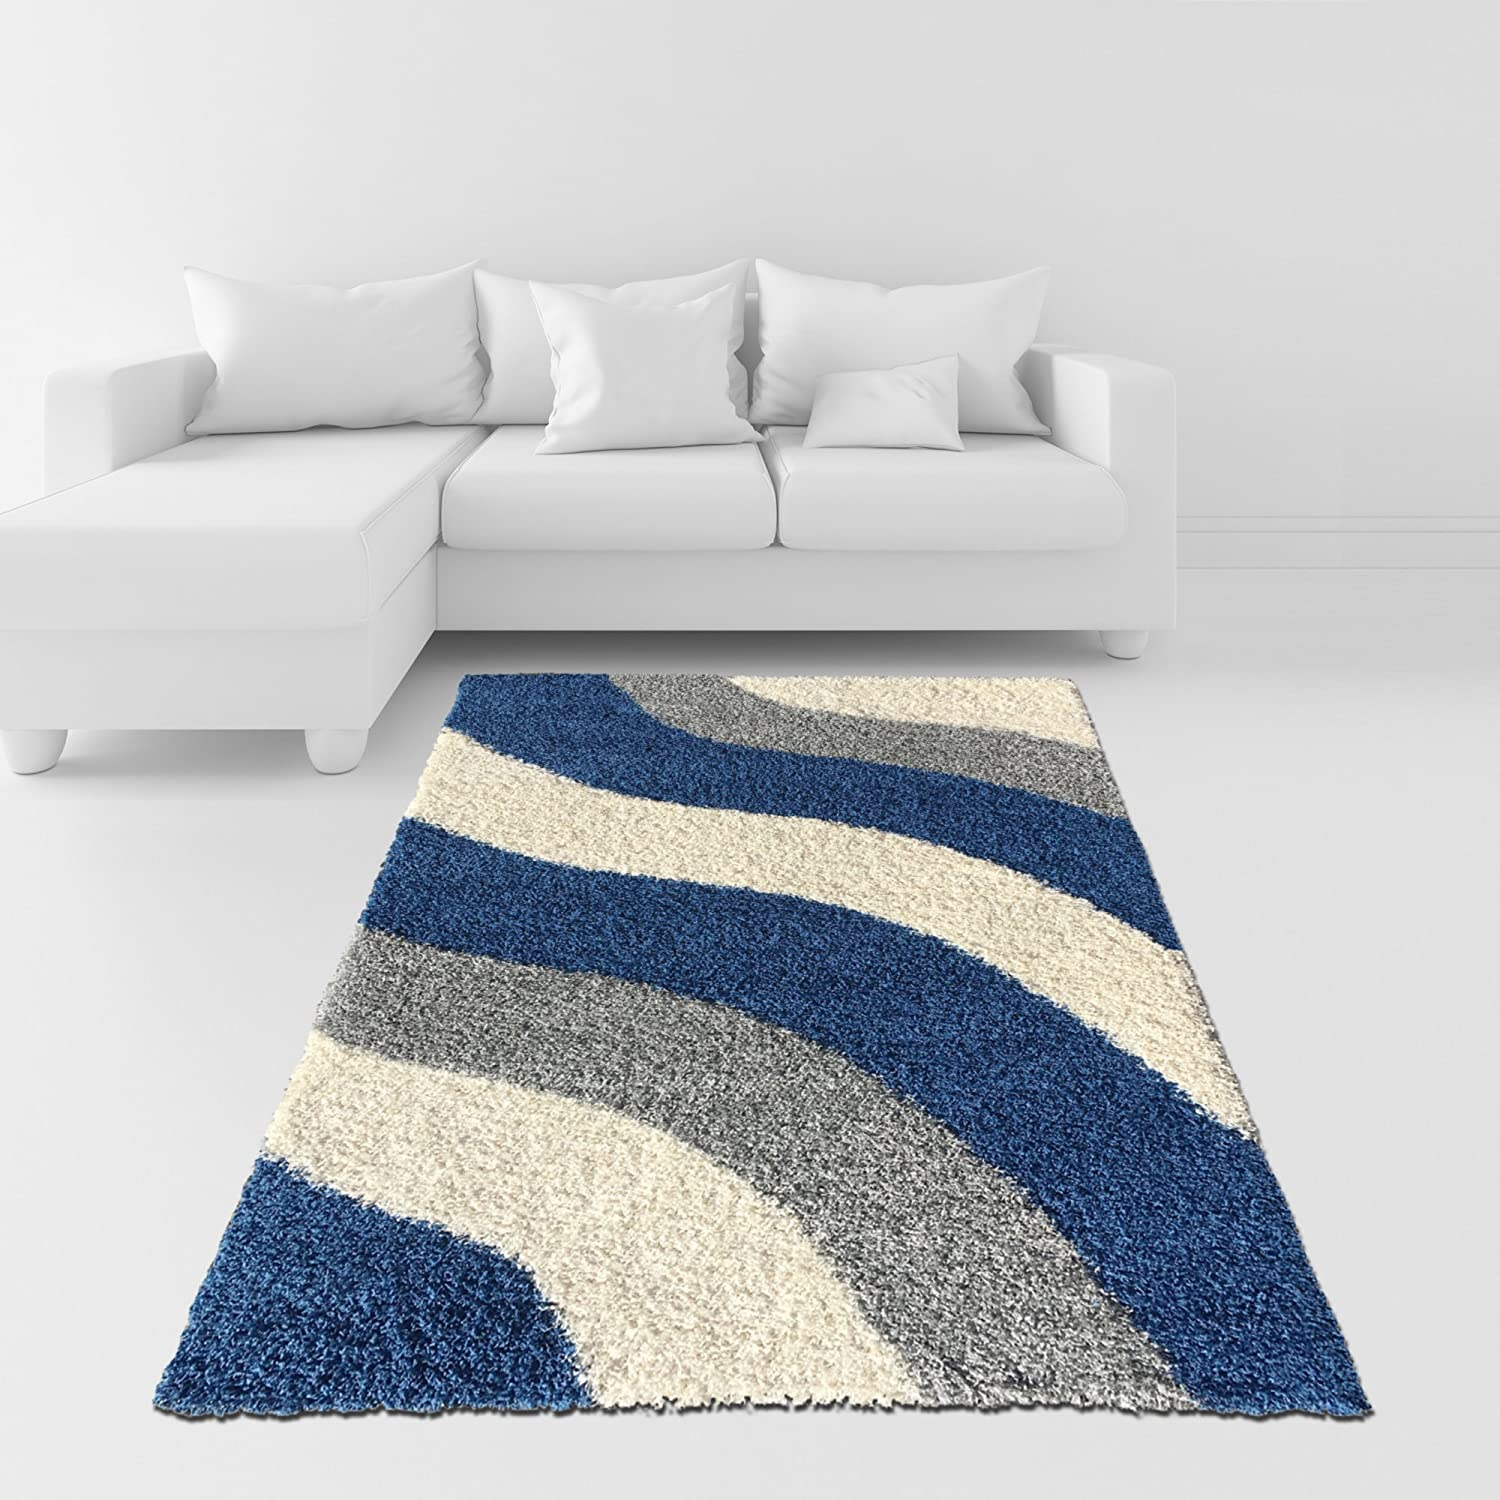 amazoncom soft shag area rug 3x5 geometric striped ivory blue grey shaggy rug area rugs for living room bedroom kitchen decorative modern